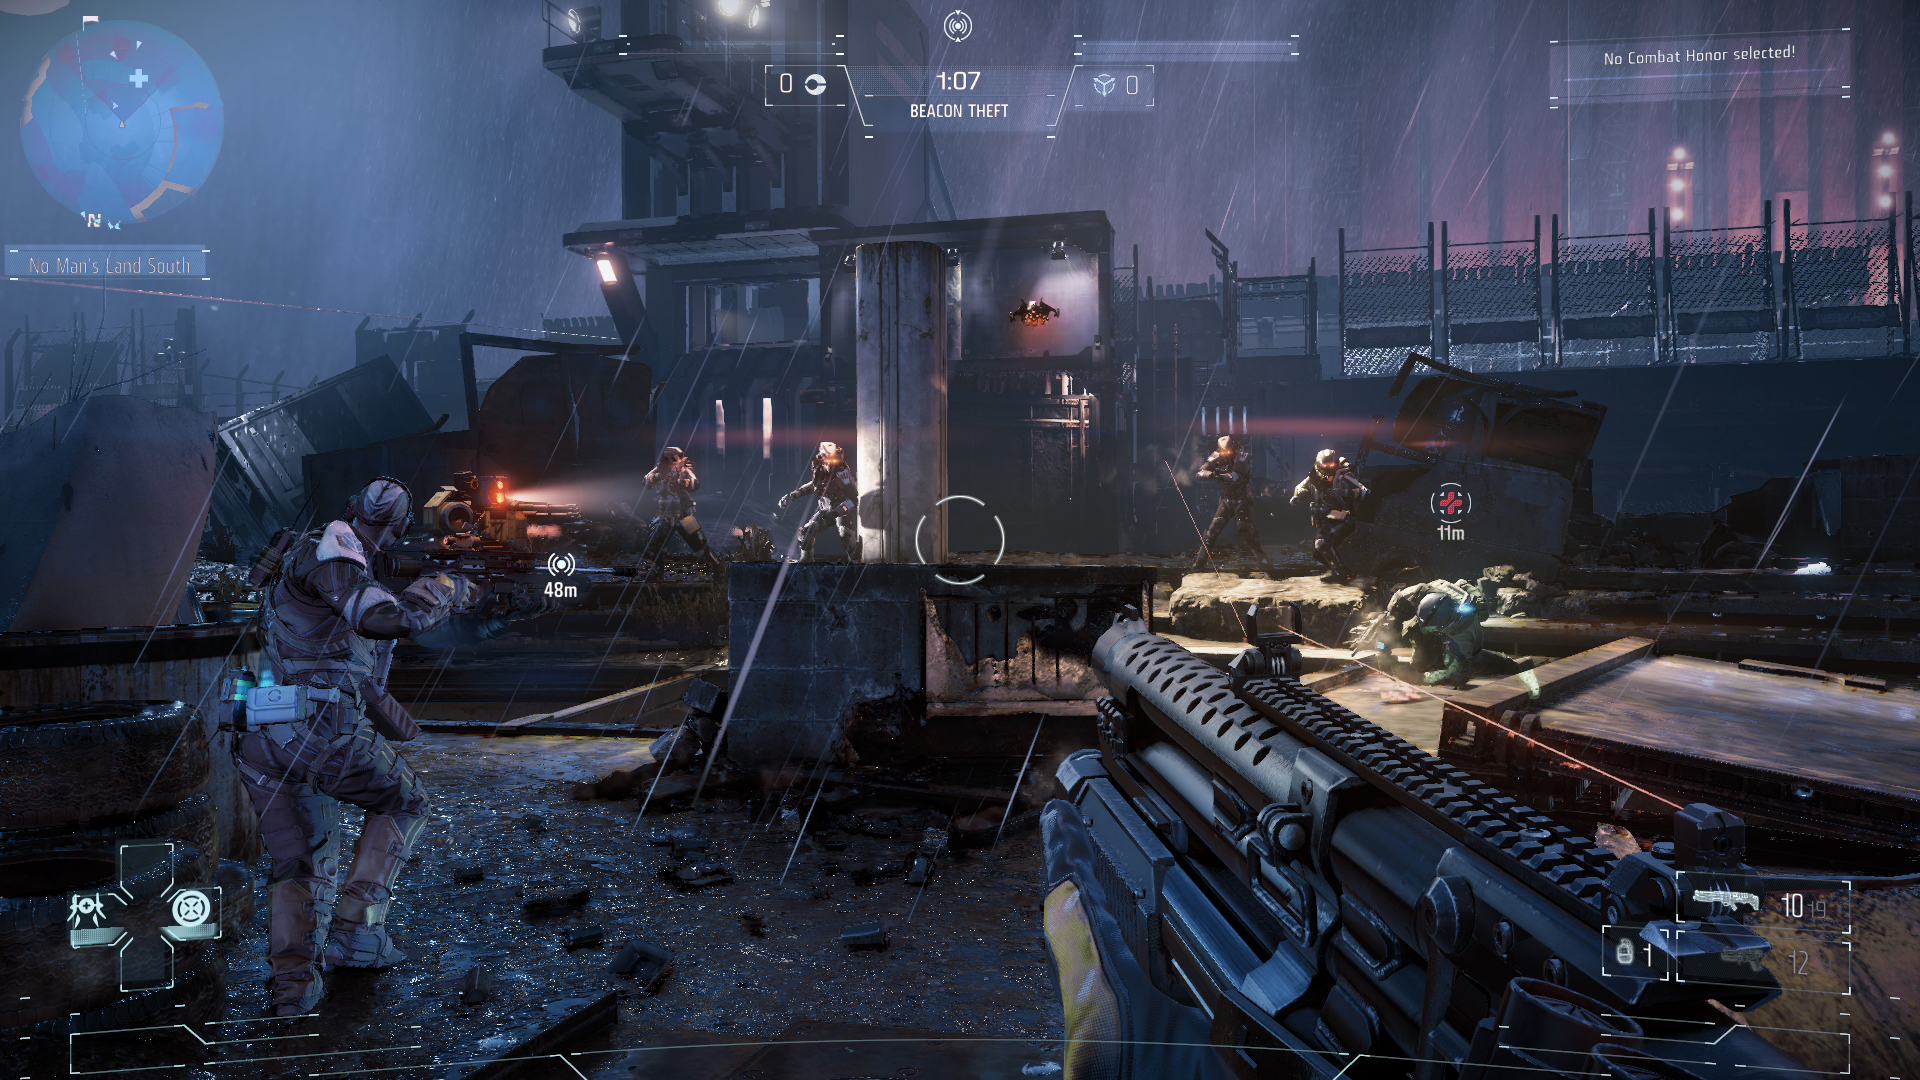 action_video_games_bad_for_you_-_killzone_shadow_fall